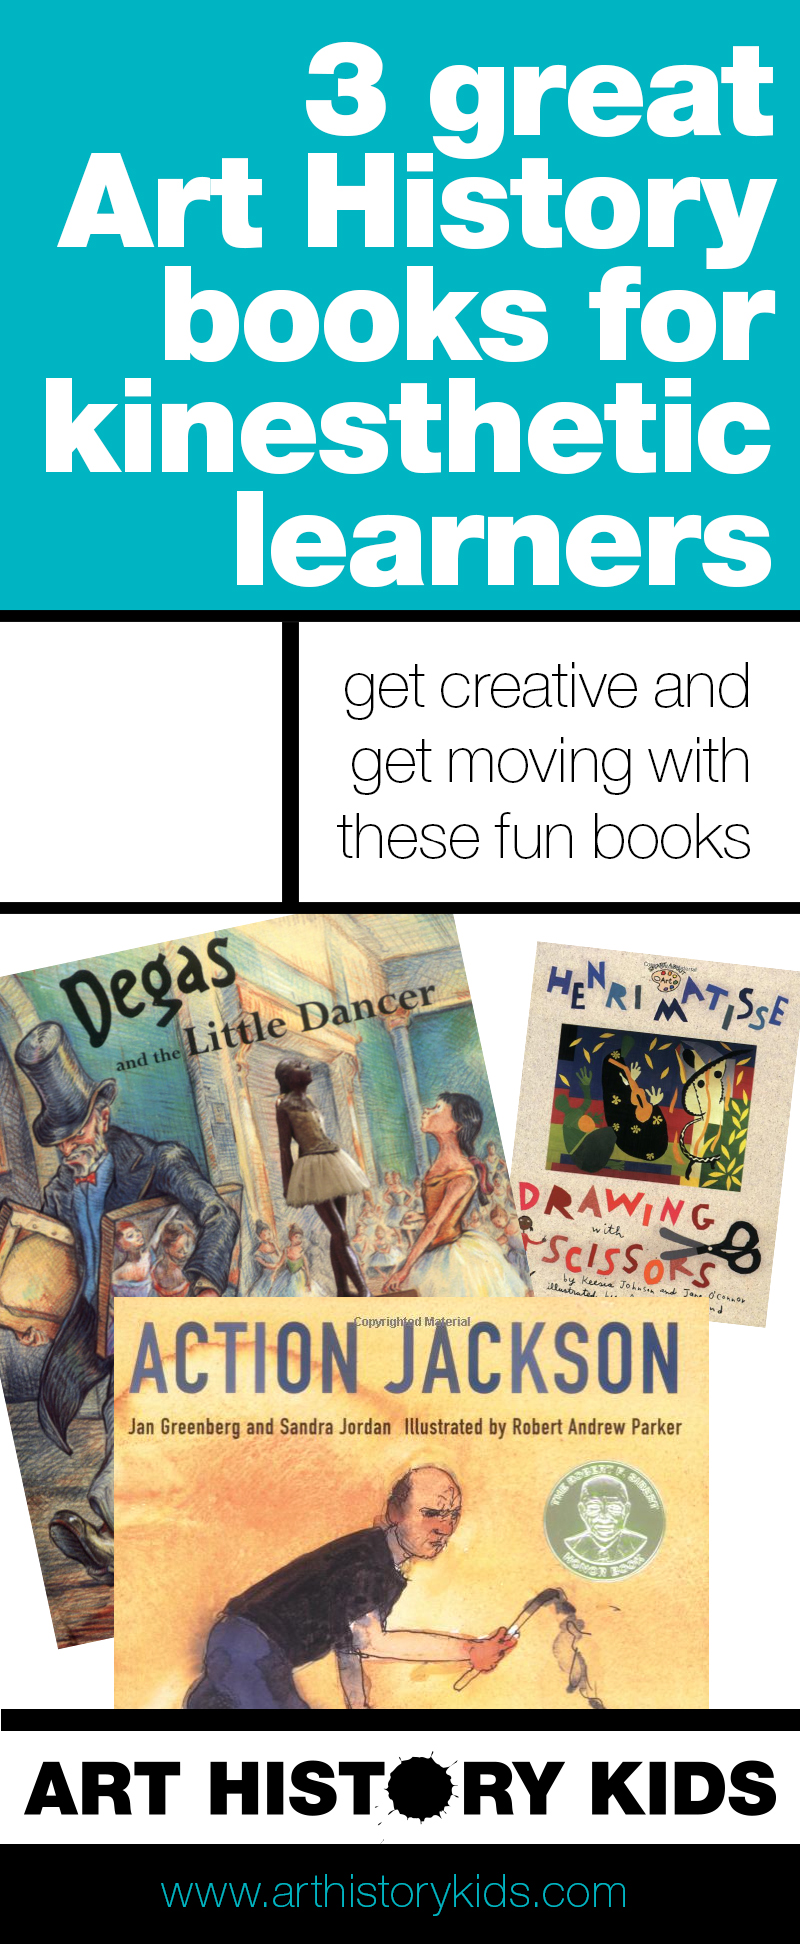 A great roundup of Art History Books for kids who are kinesthetic learners. Perfect for homeschoolers looking to supplement their art history unit studies. Click through to make art history fun for kids with these great art project ideas.